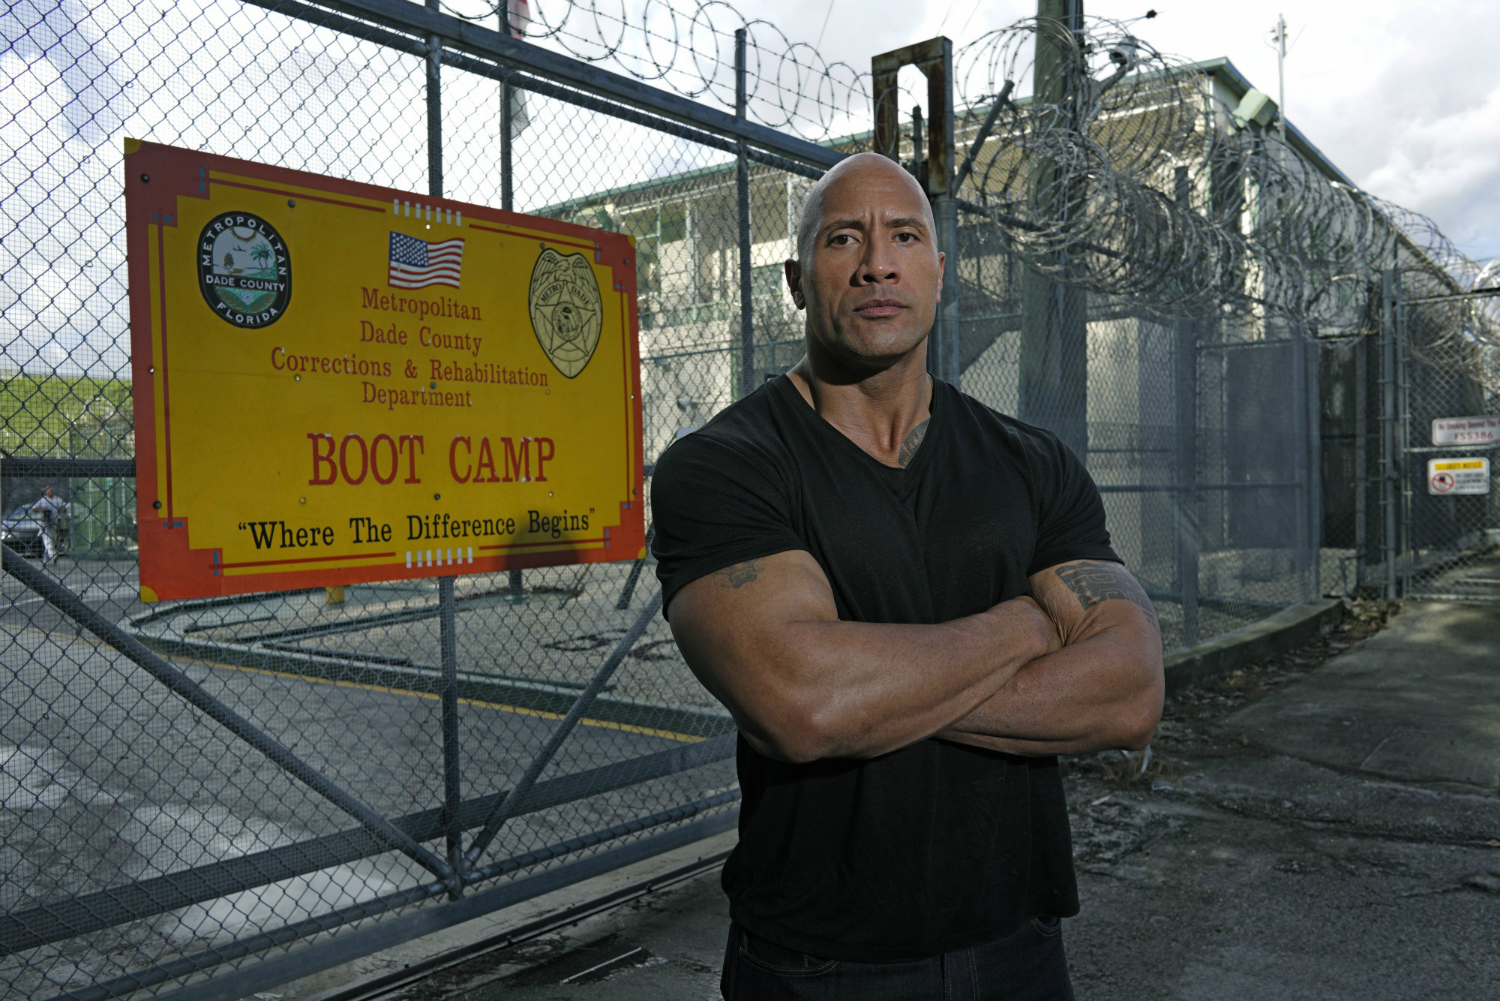 Dwayne Johnson heads to youth prison boot camp with new ...